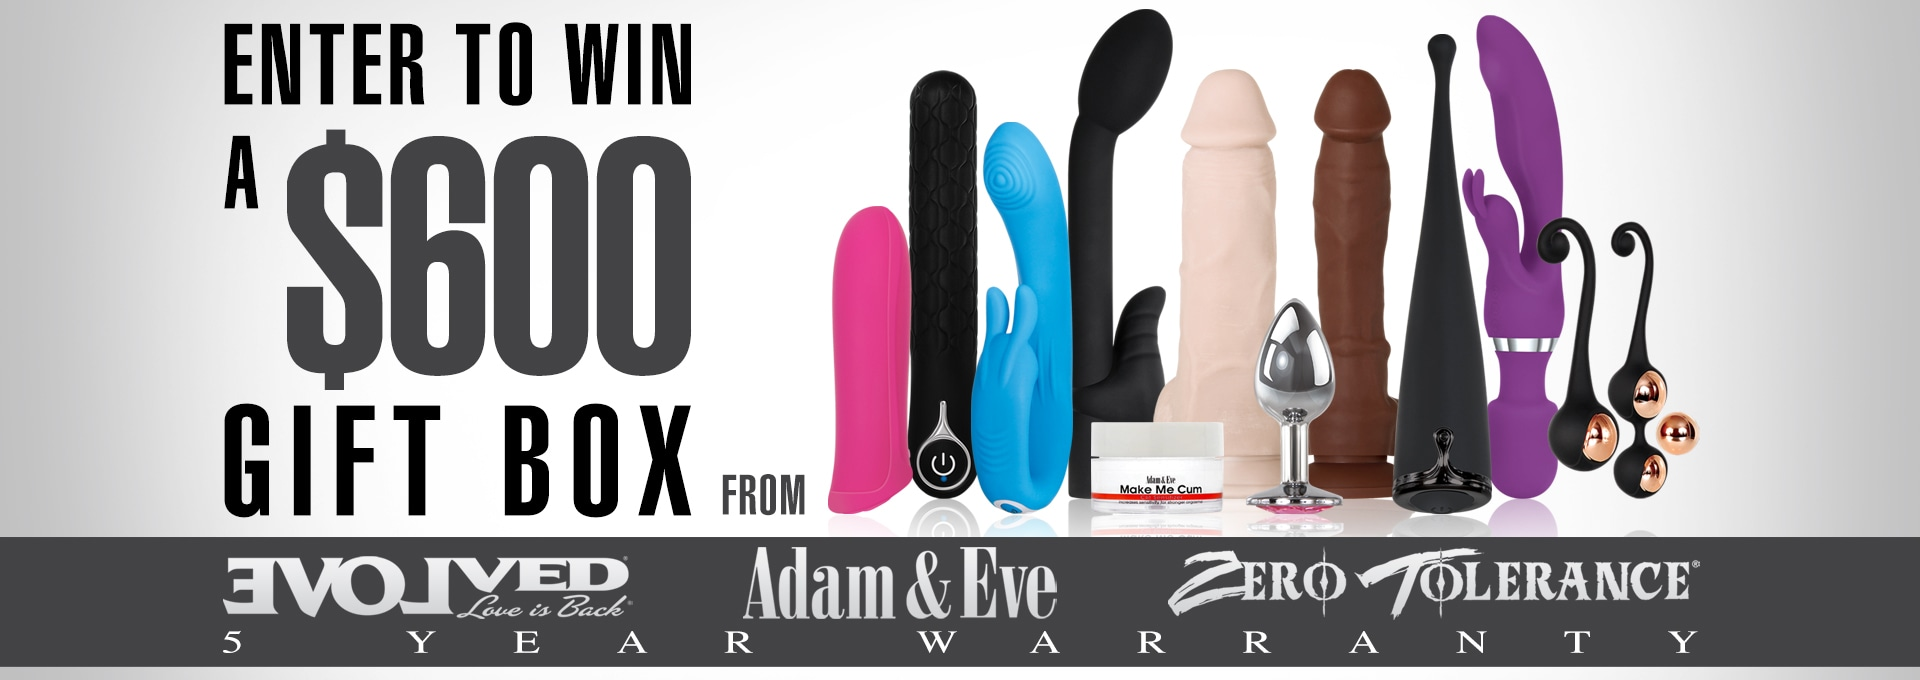 WIN a $600 Gift Box From Evolved Novelties Valid now through May 12th